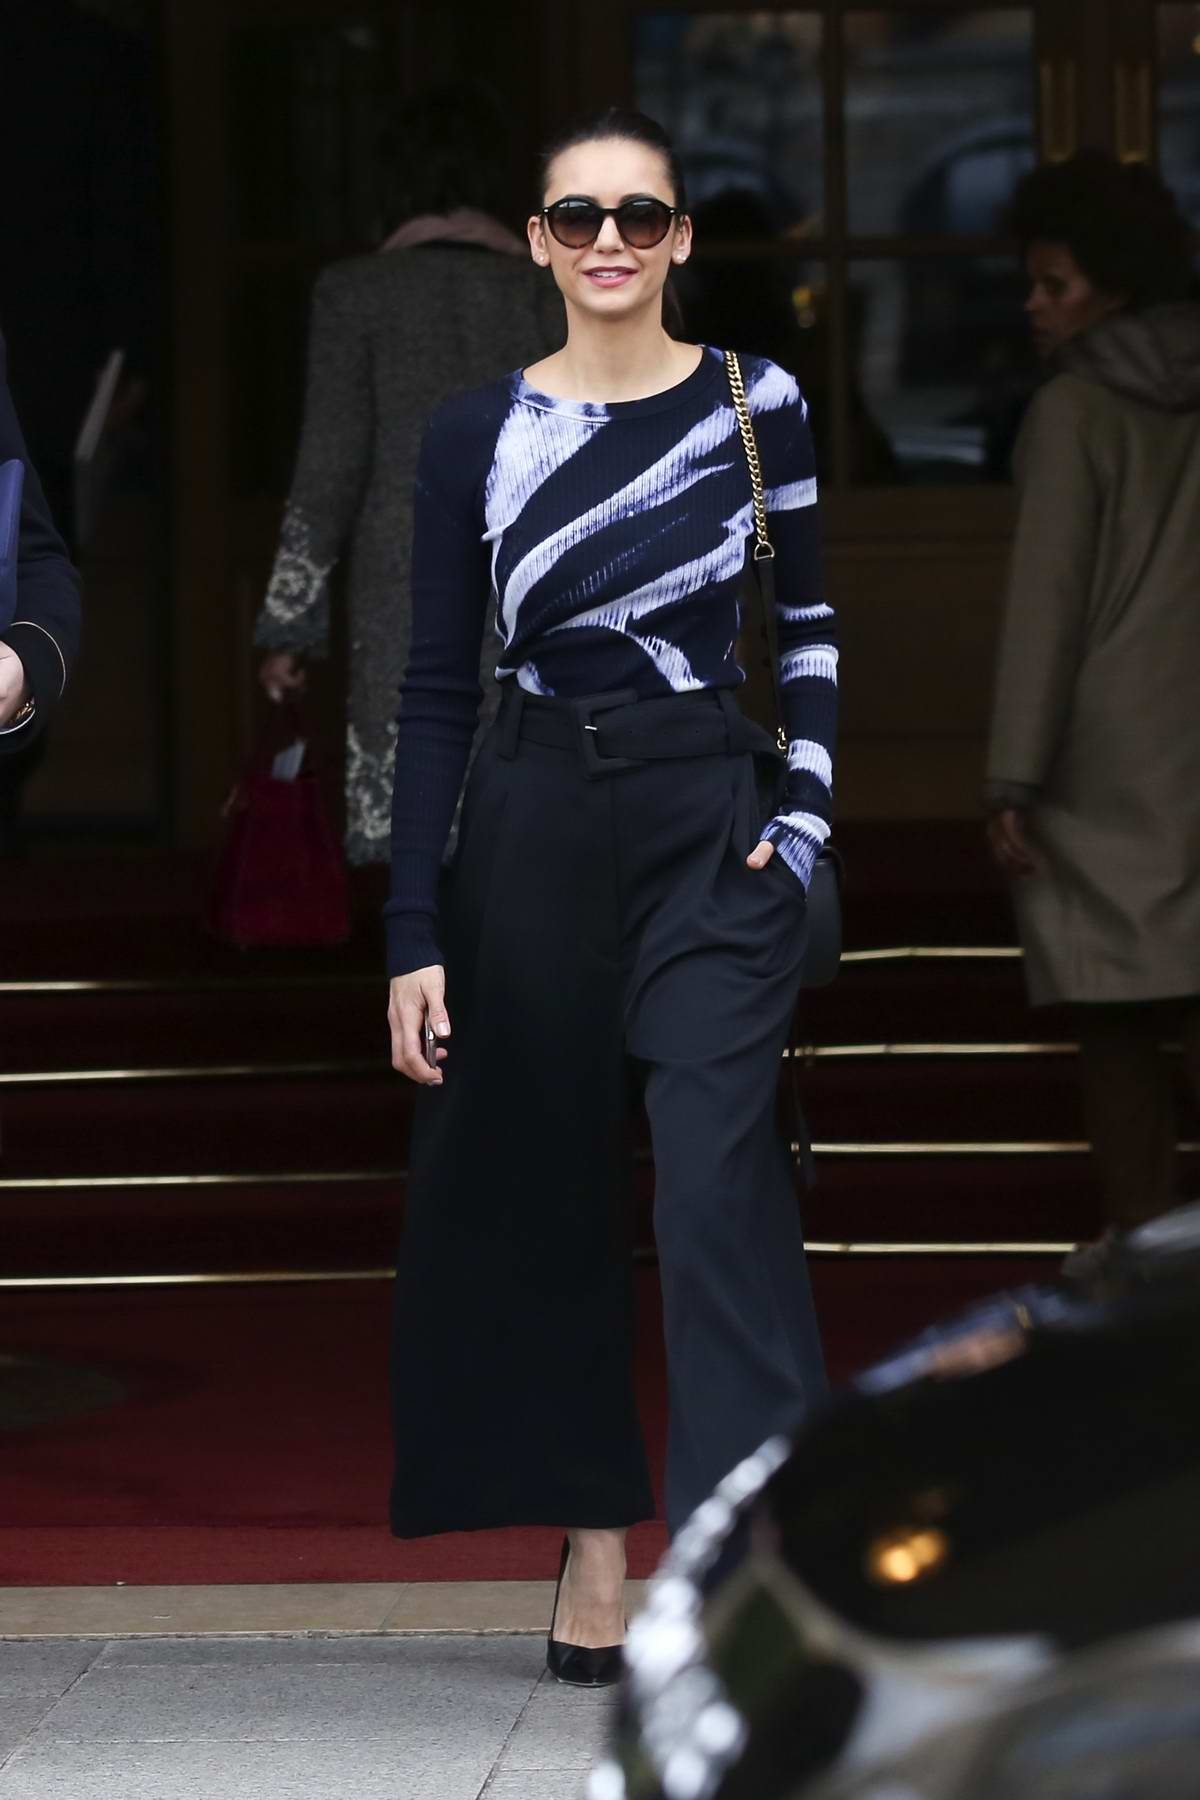 Nina Dobrev keeps it chic as she leaves the Ritz Hotel in Paris, France